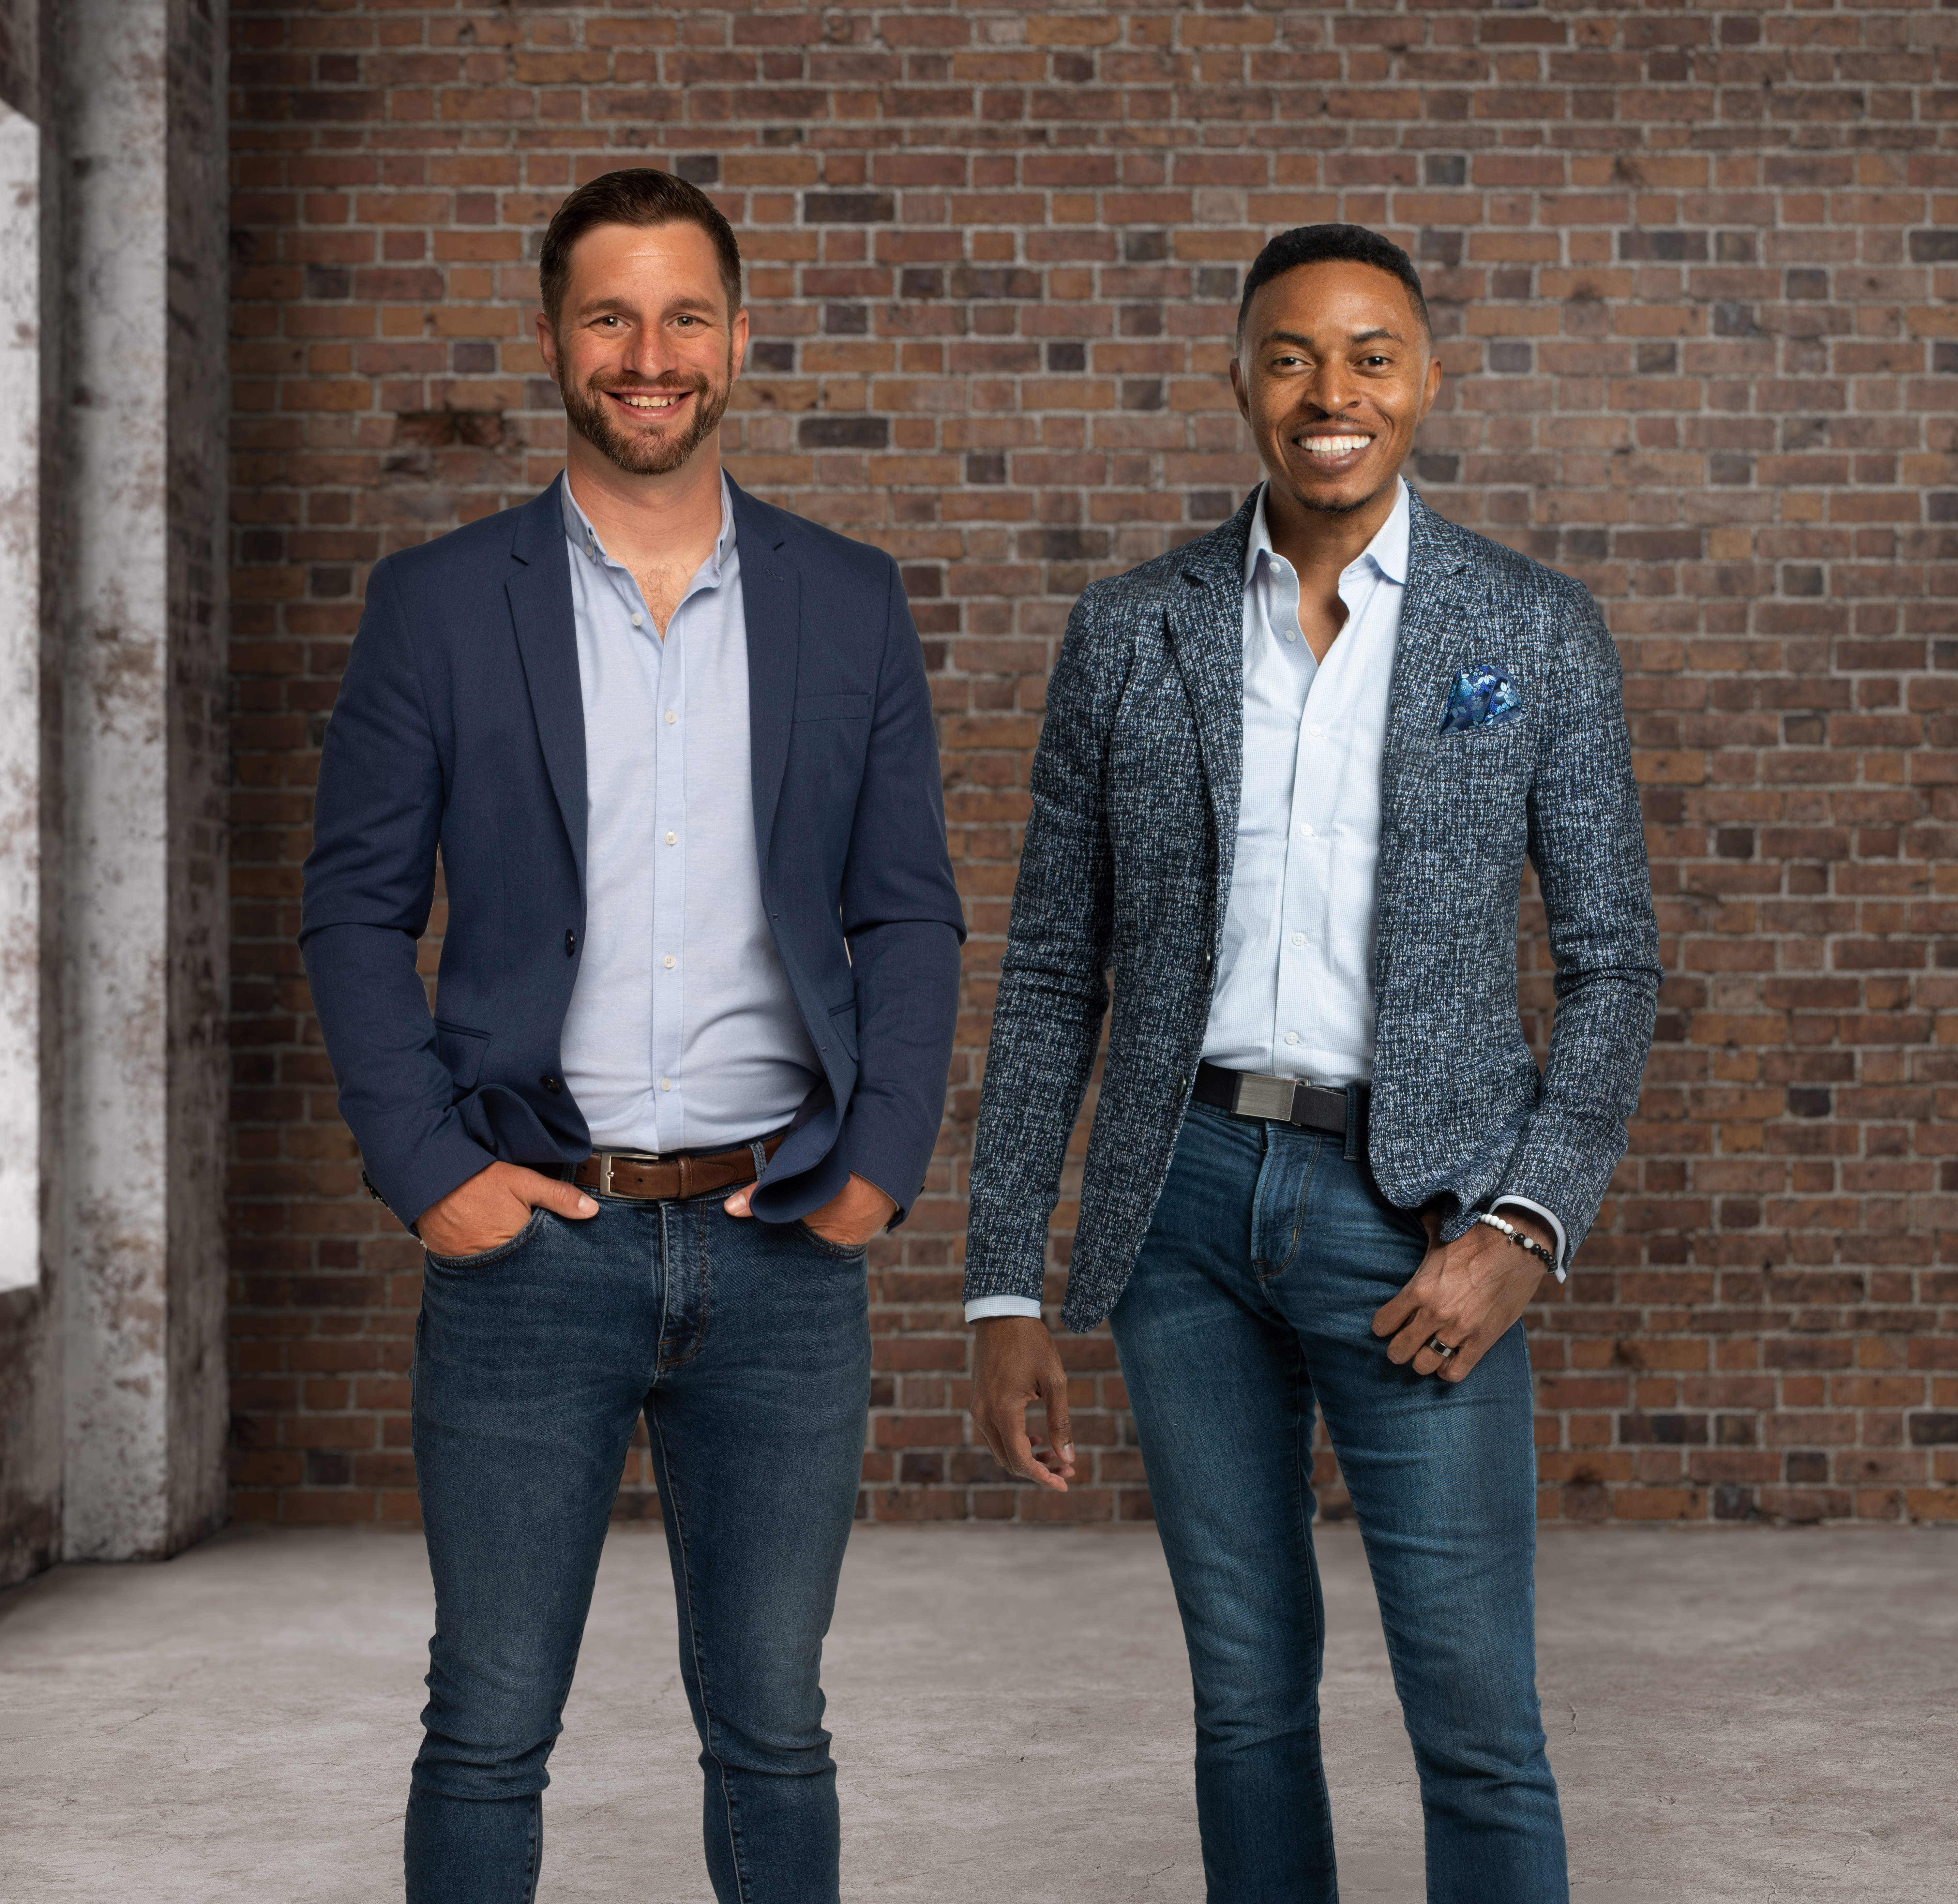 Cyvatar co-founders Craig Goodwin (left) and Corey White (right)